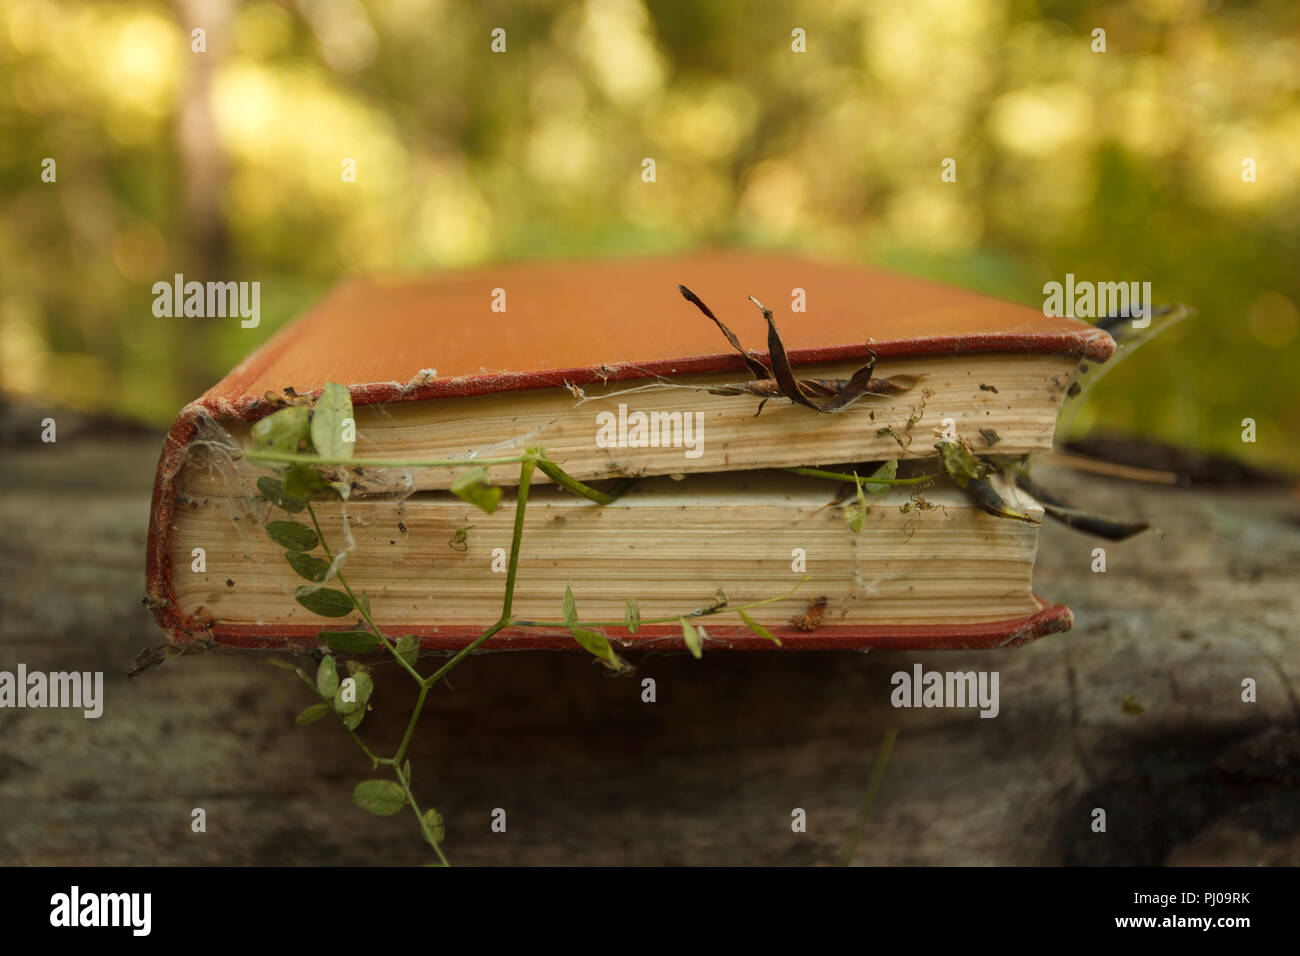 Bewitched Book With Magic plants and spider web, concept of mystery and spiritual - Stock Image